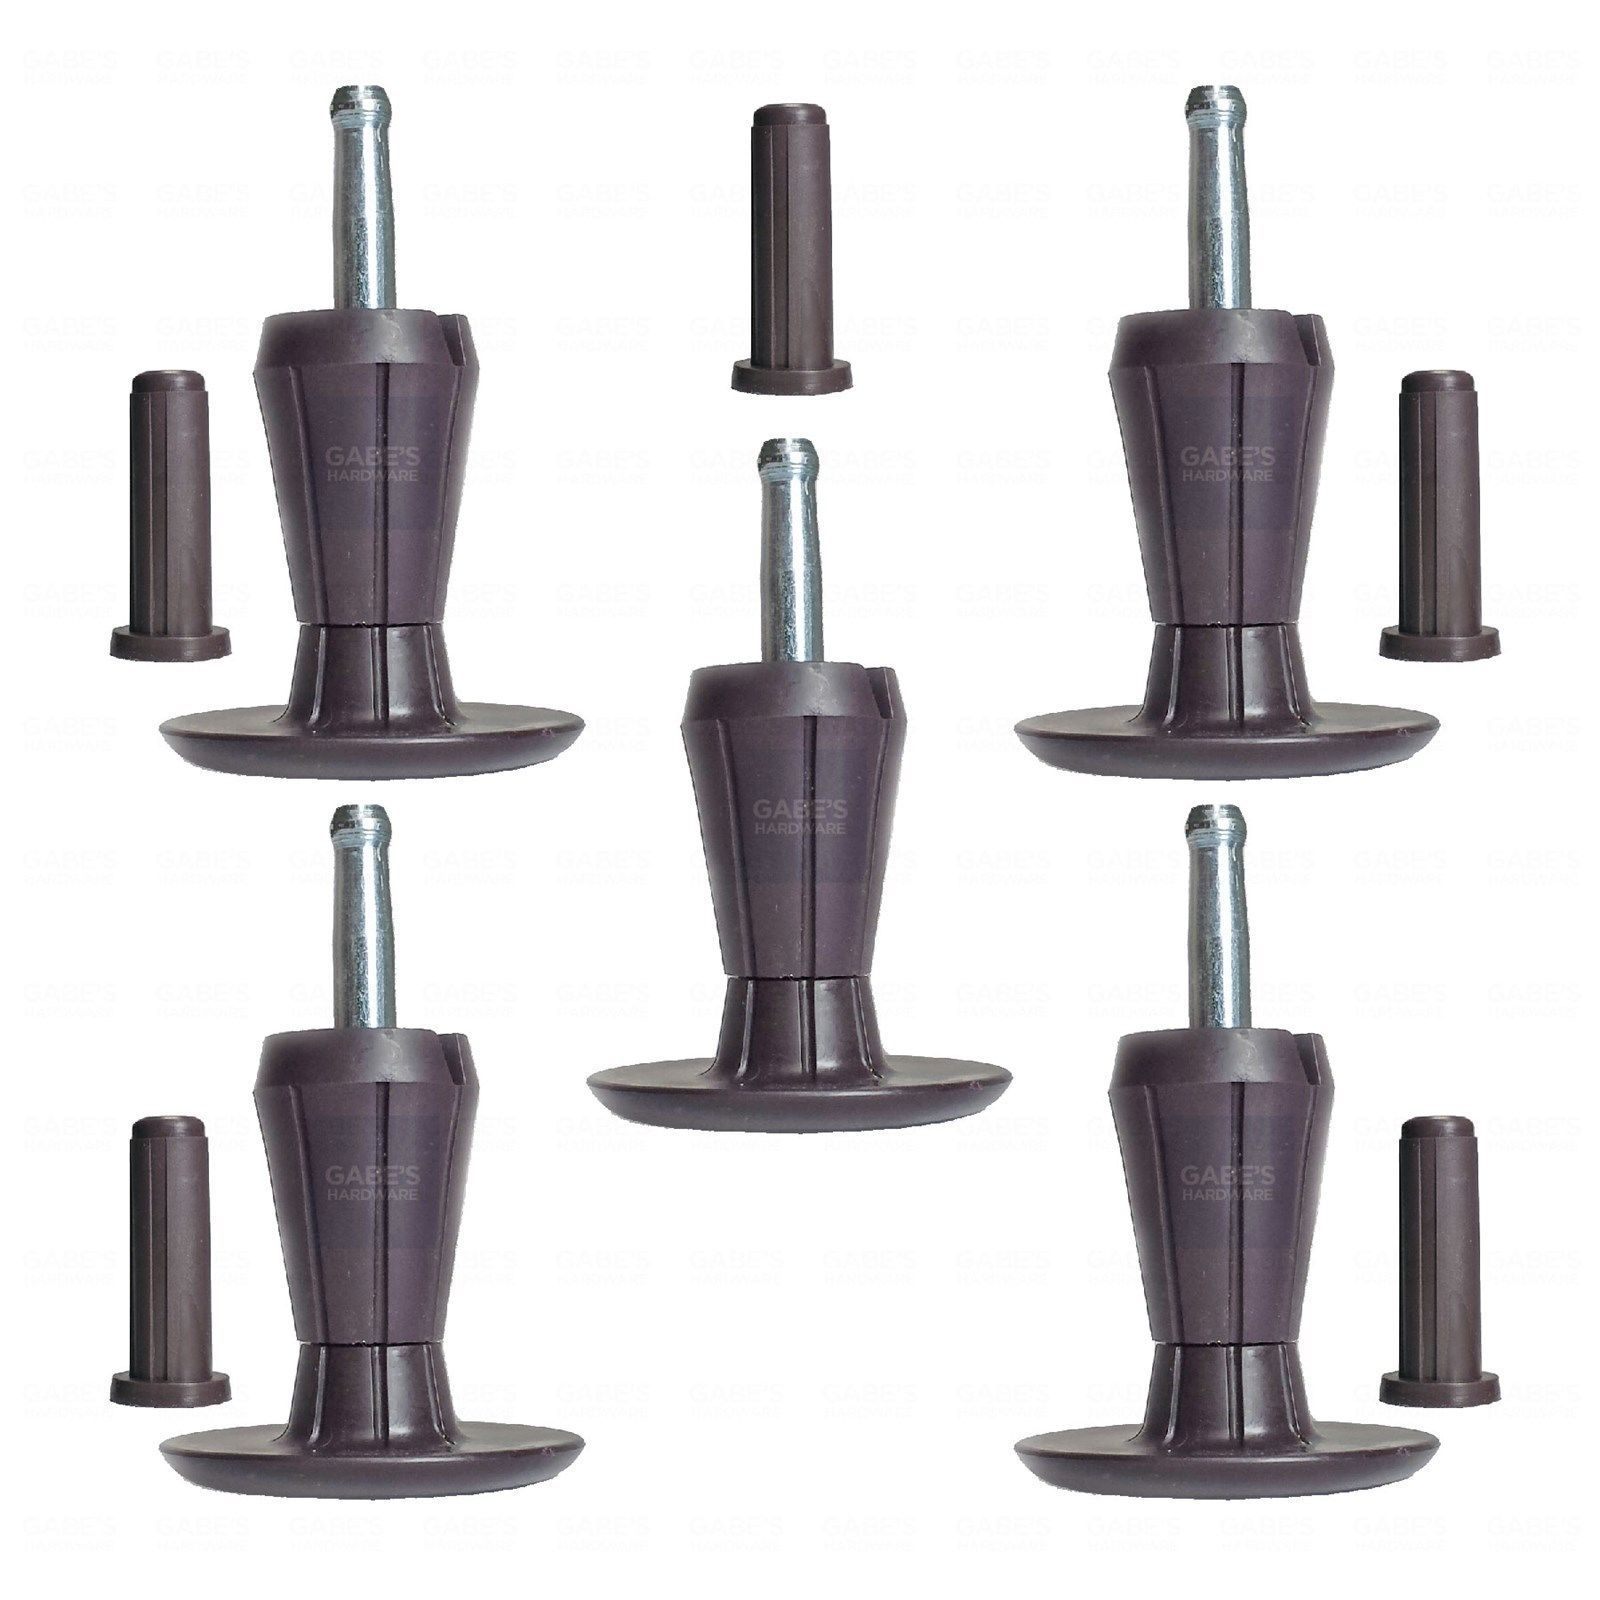 Primary image for SET OF 5, TWO-PART STEM GLIDES BED FRAME FEET LEGS - SOCKET INSERTS INCLUDED